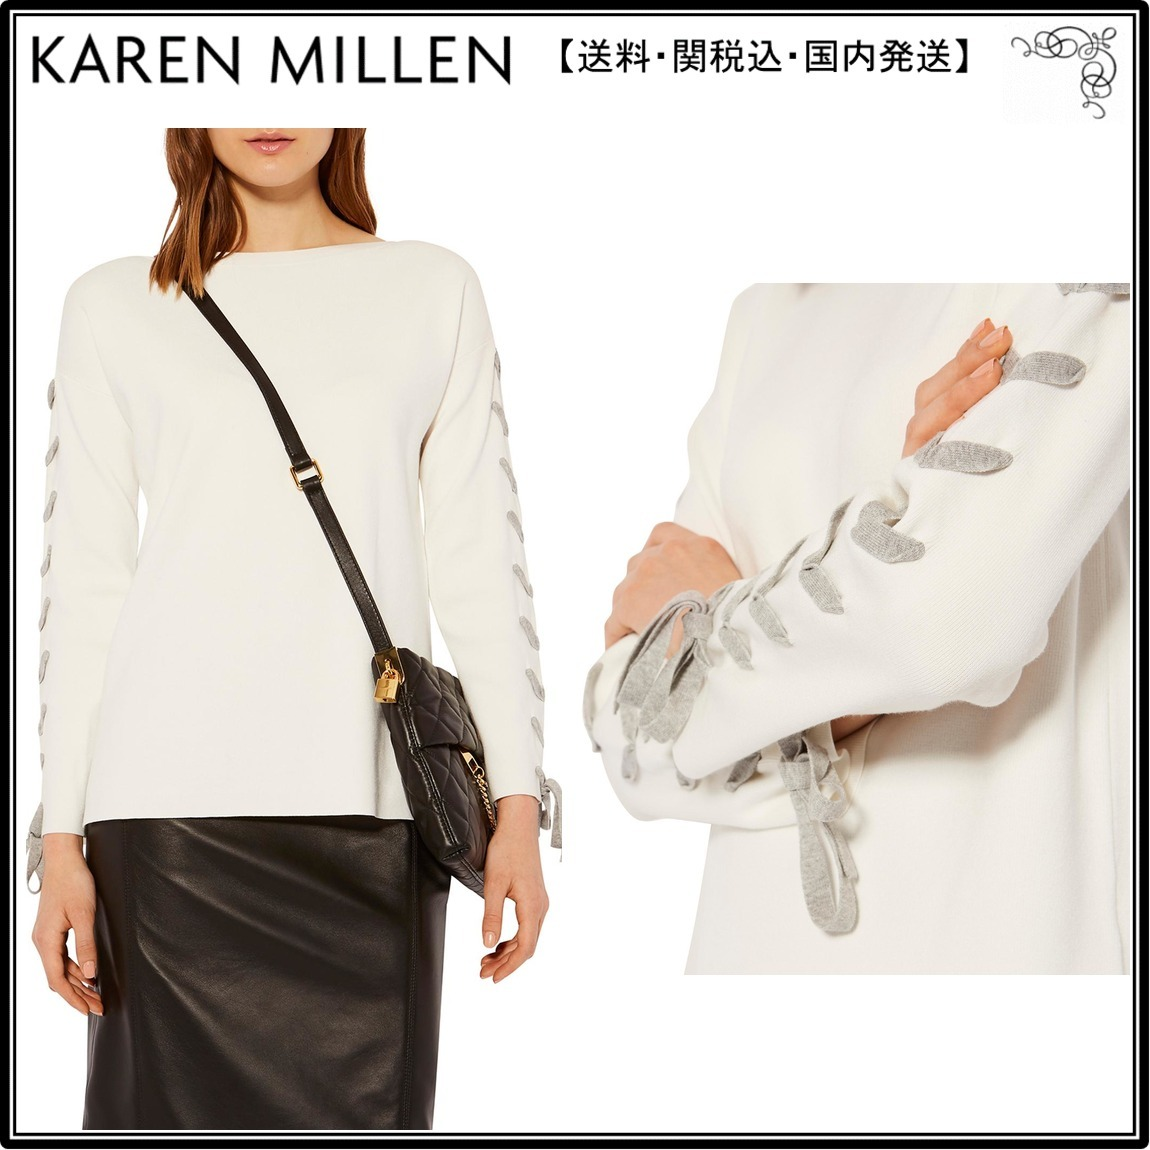 【海外限定】Karen Millen セーター☆Knitted Lace Detail Jumpe